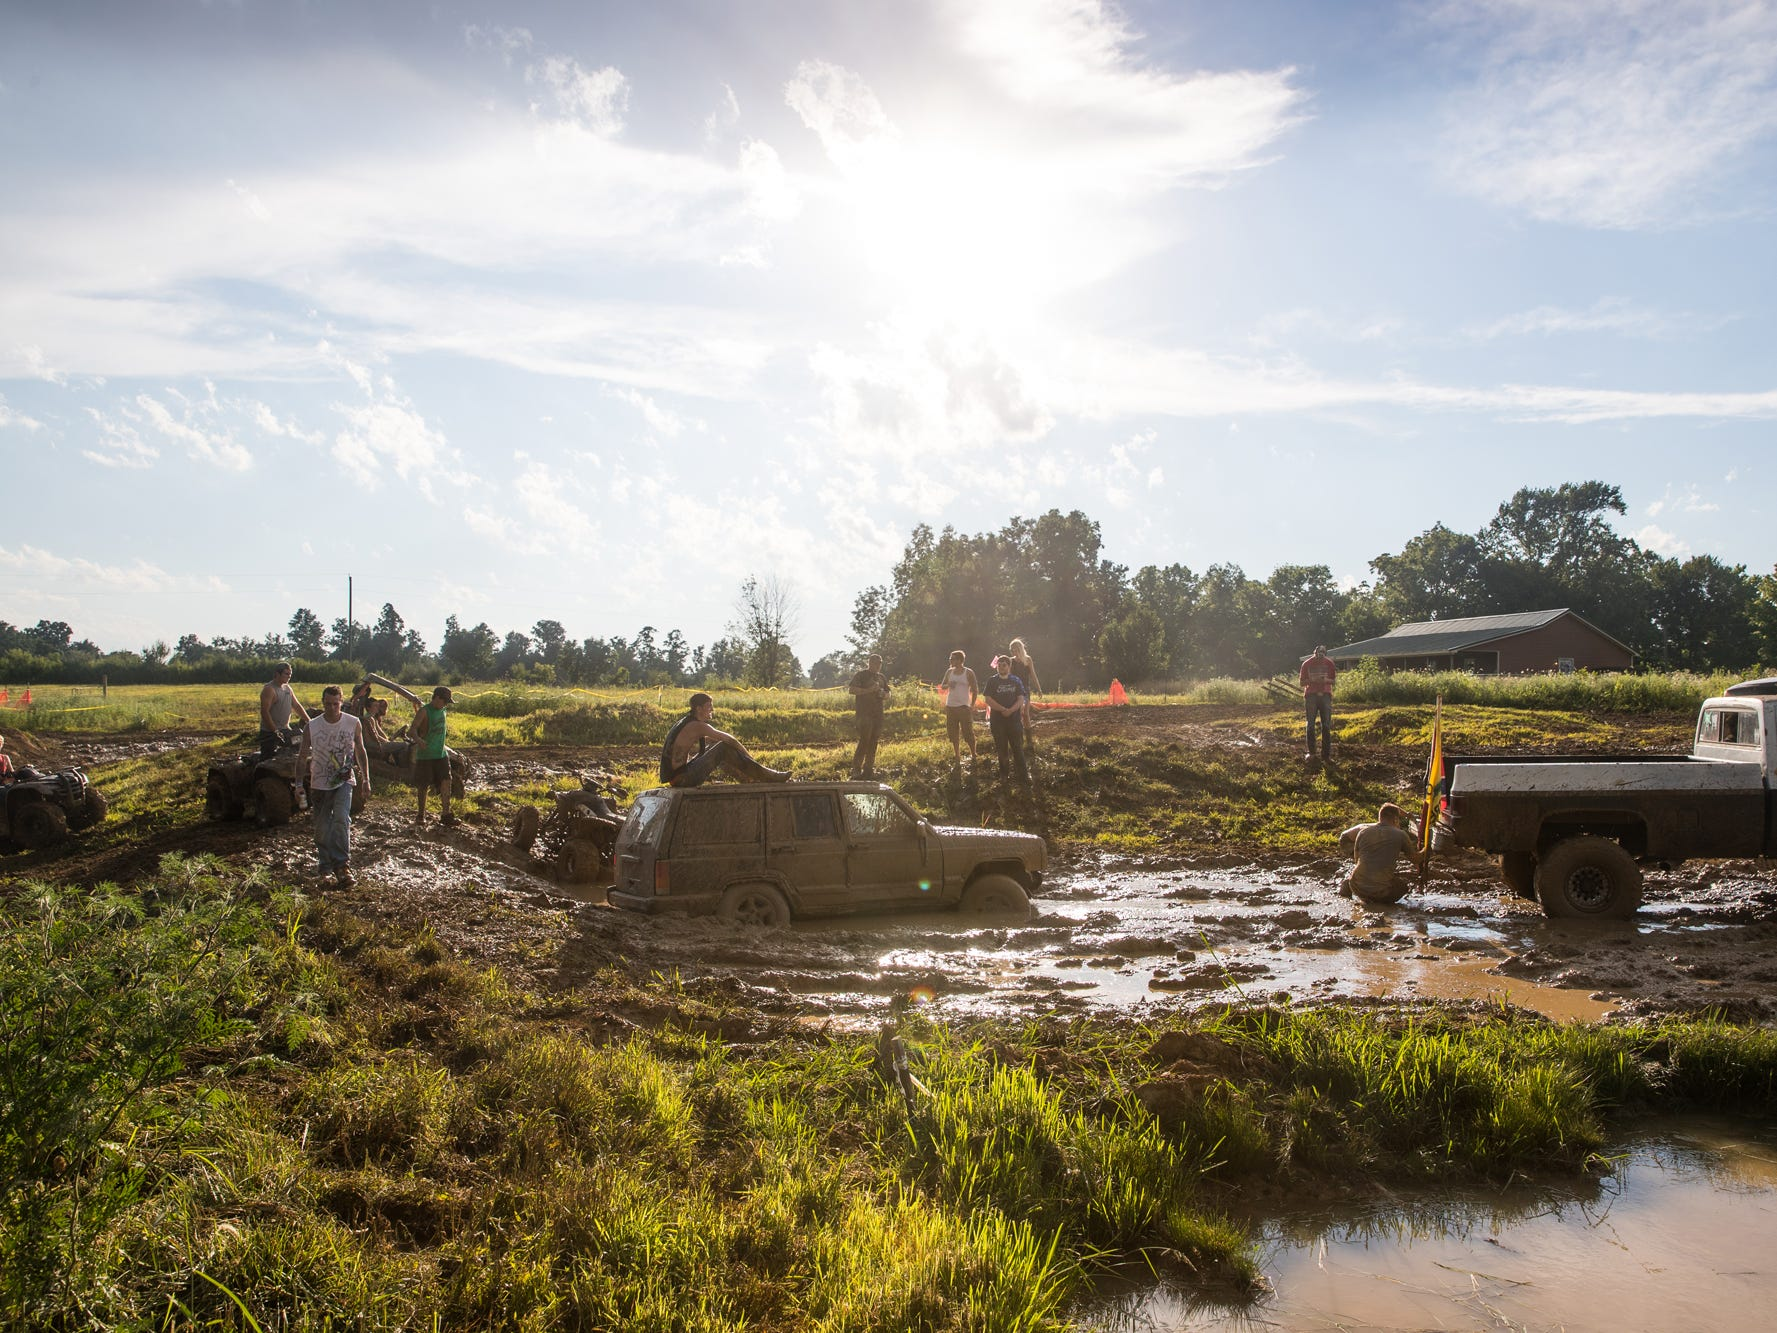 Redneck Rave attendees work to get a stuck Jeep out of a mud pit at BlackSwan Mudpit in Medora, Ind., on Friday, July 20, 2018.